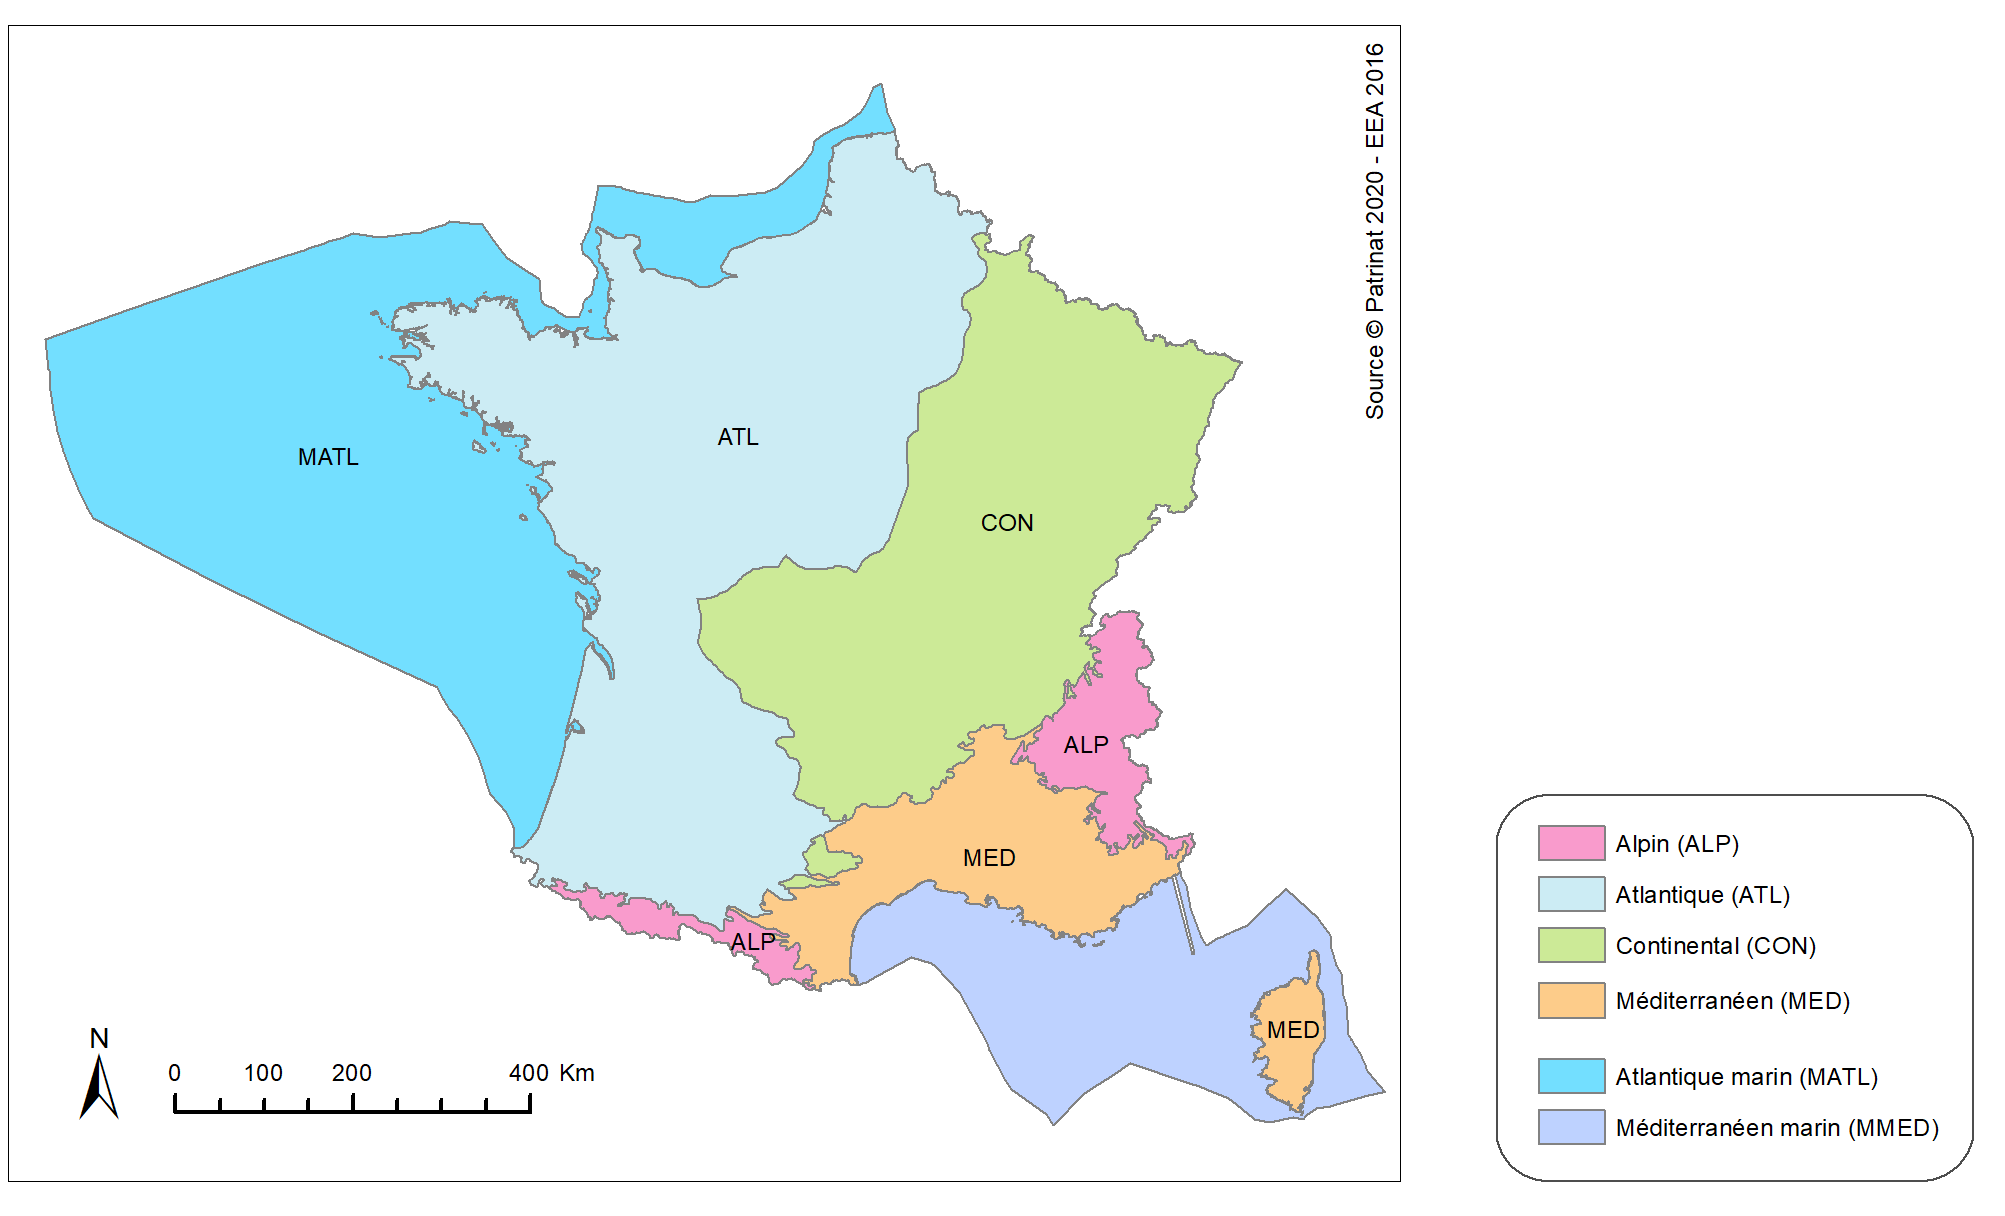 Figure 2: Biogeographical regions for assessments of conservation status in France